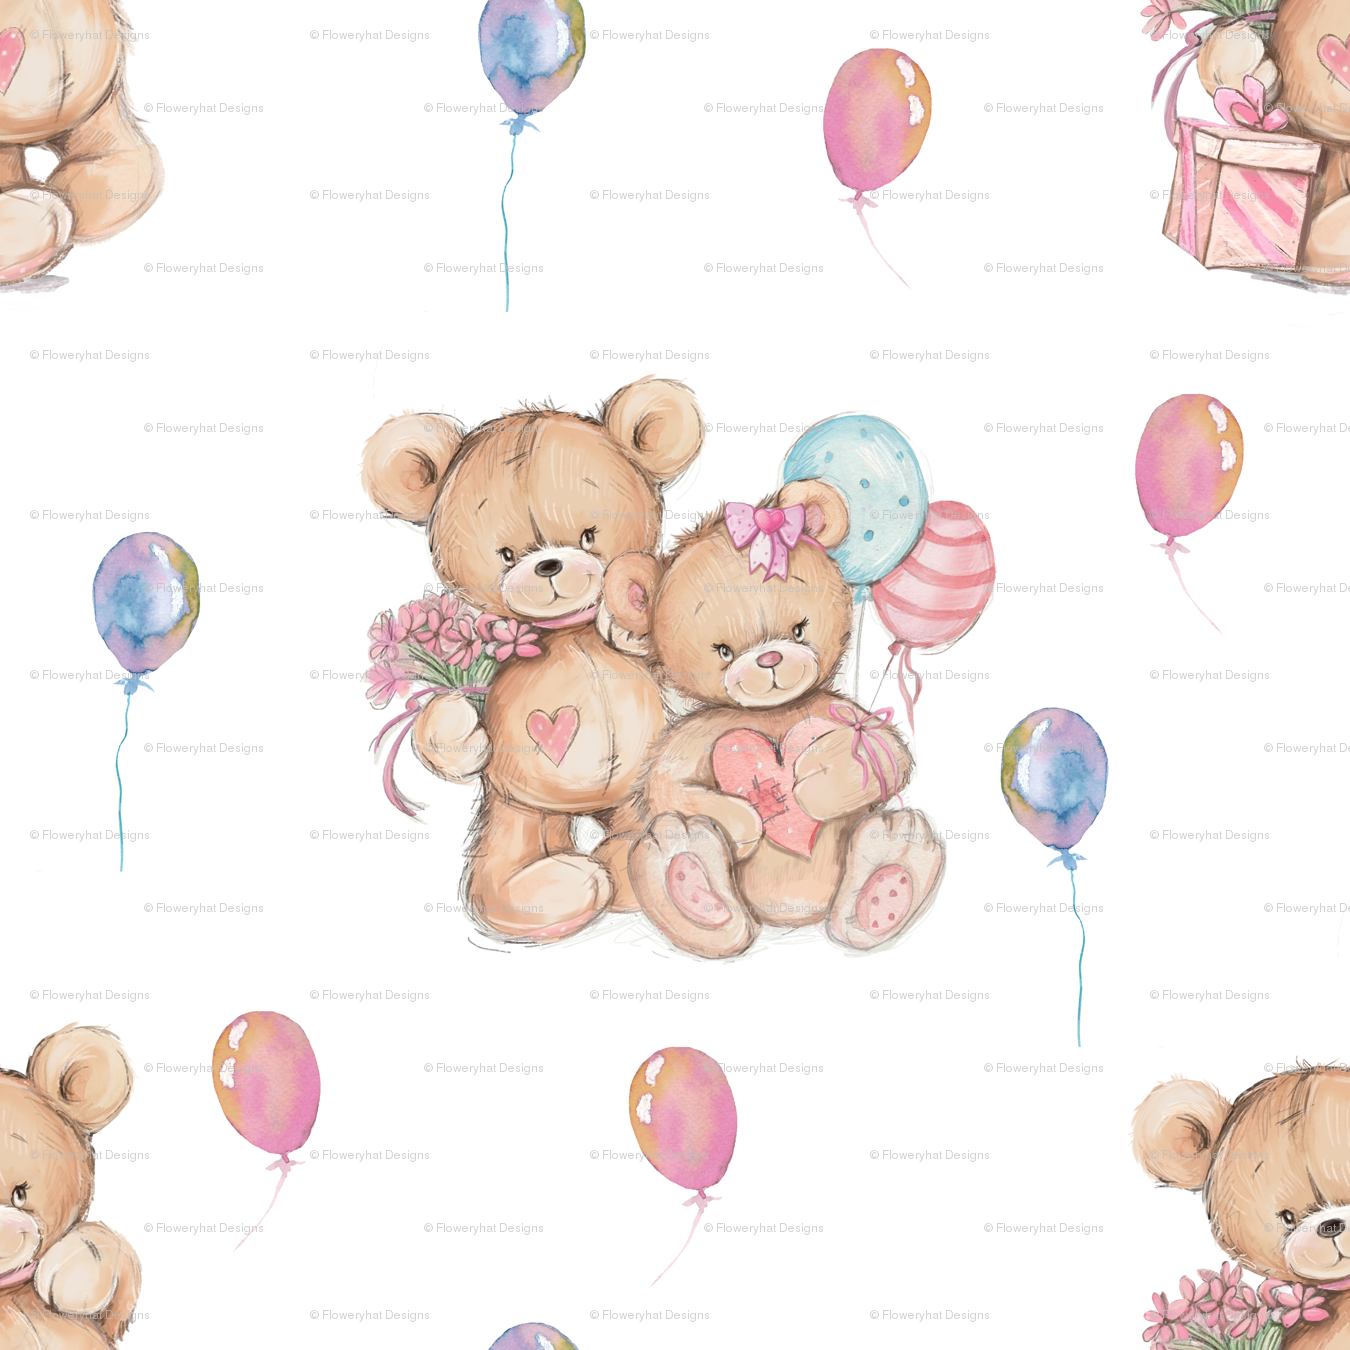 1350x1350 Large Watercolor Stuffed Teddy Bears Gift And Balloons On White